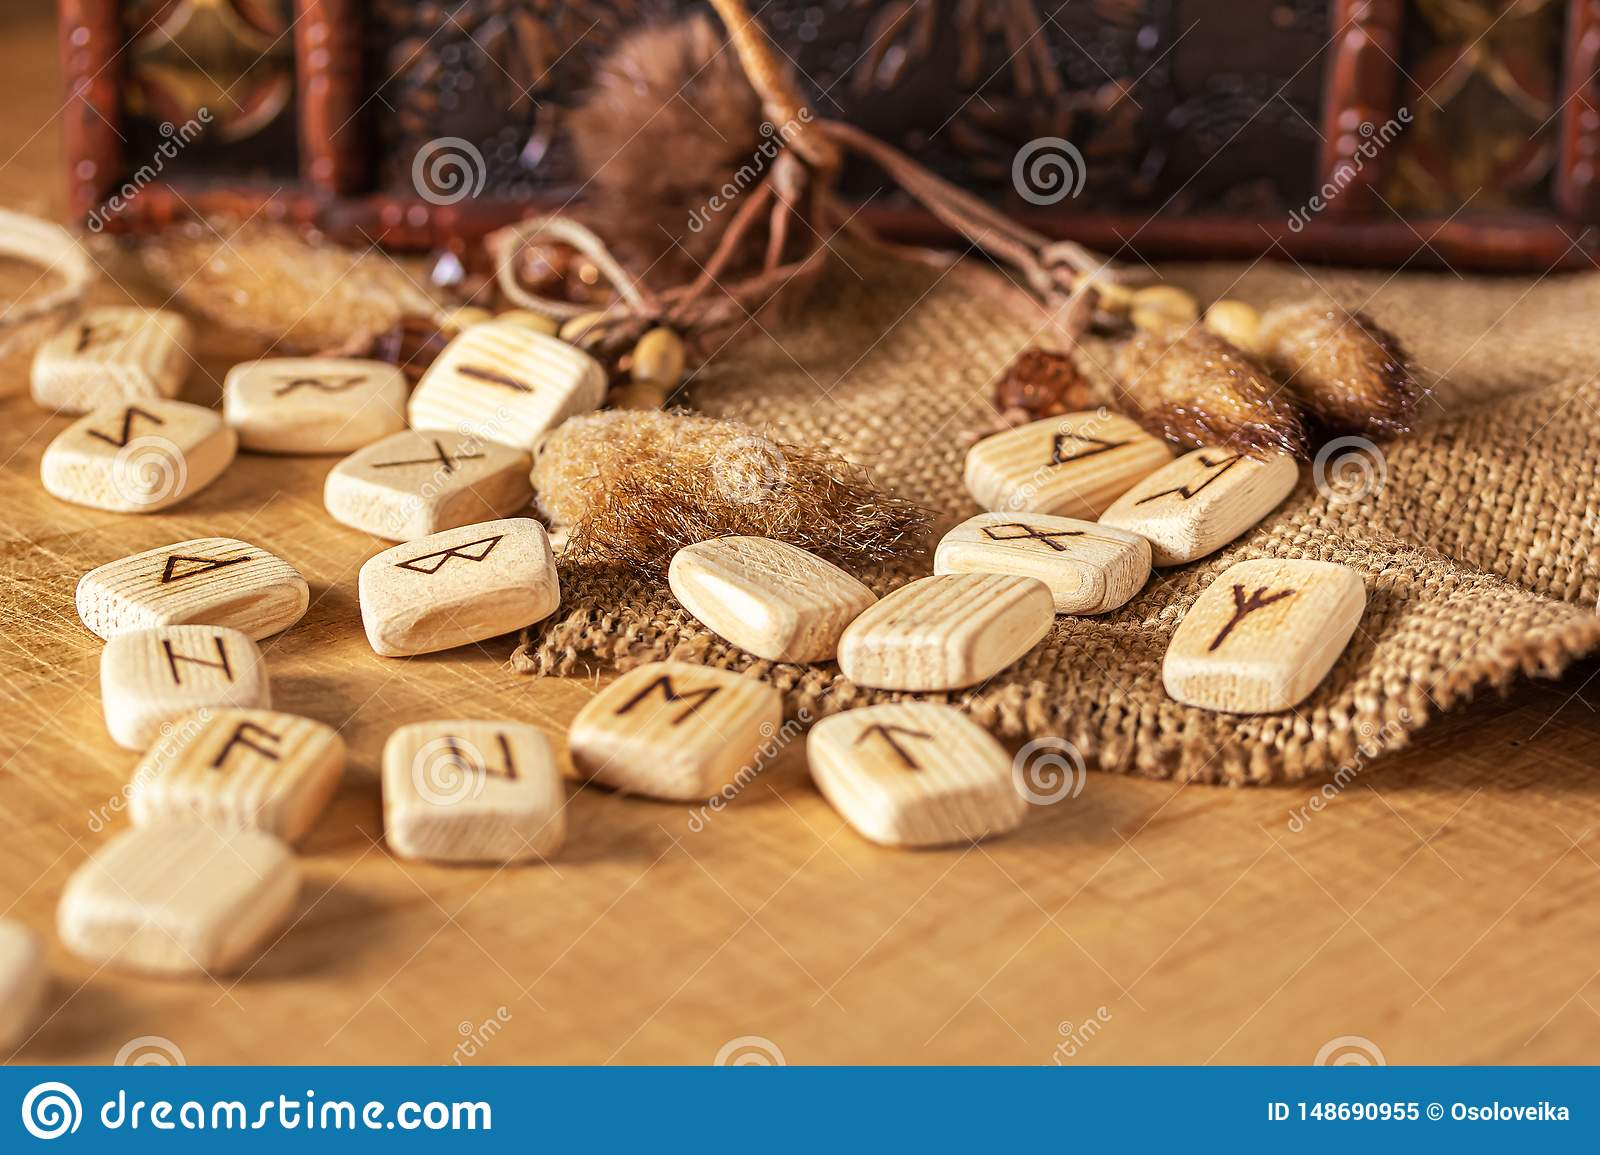 Handmade scandinavian wooden runes on a wooden vintage background. Concept of fortune telling and prediction of the